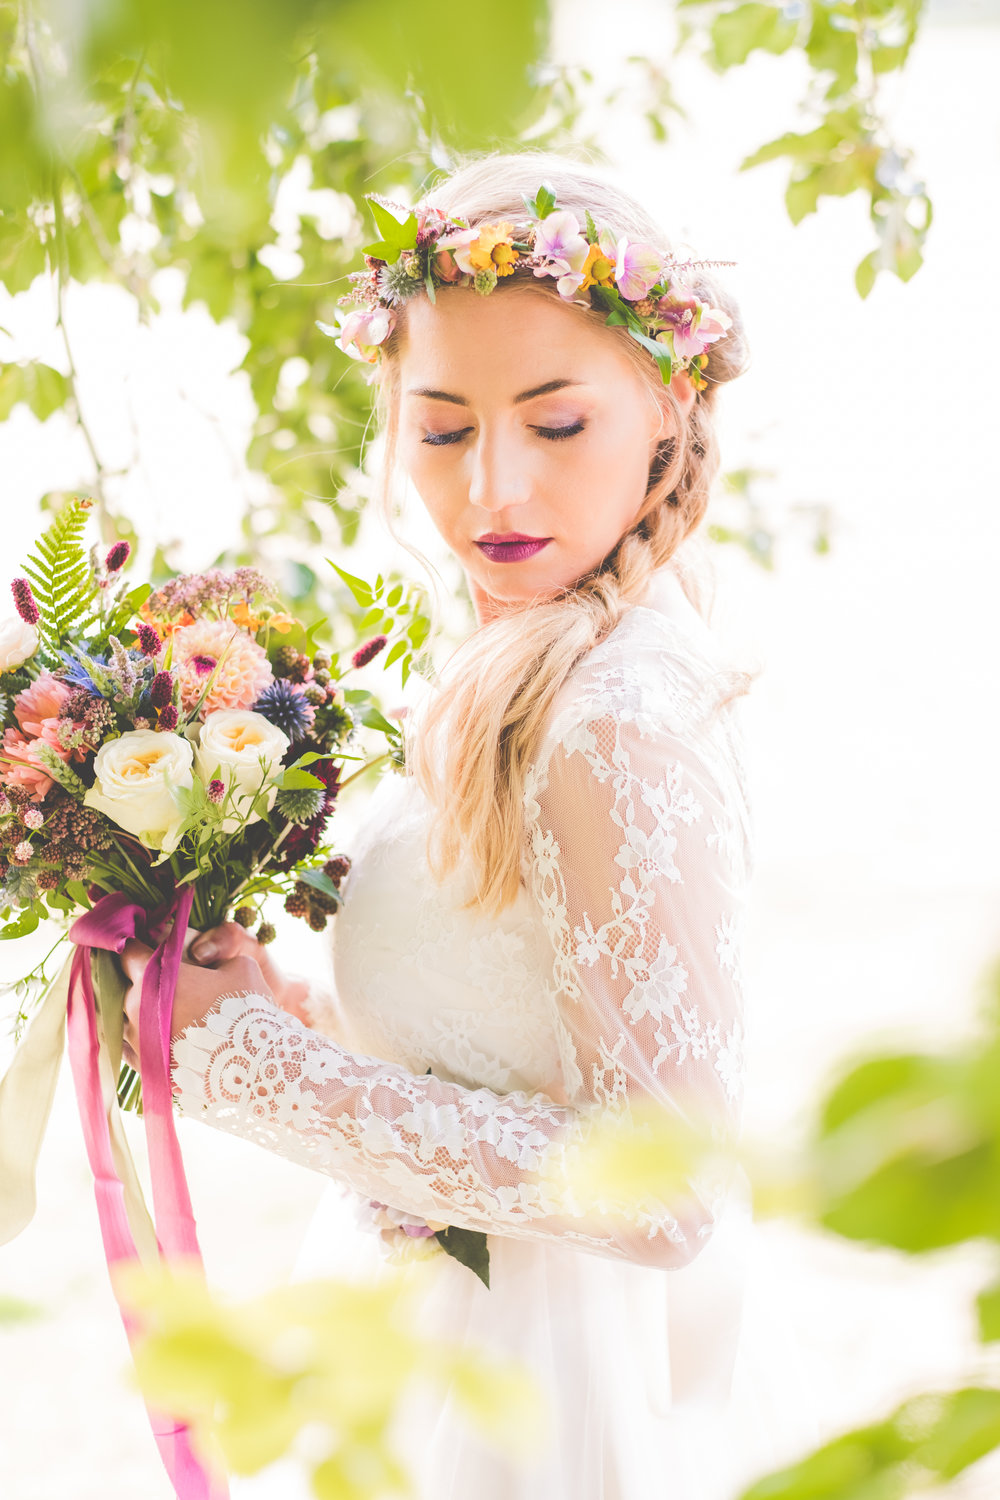 Nanteo's Styled Shoot - Images by Jon Turtle - Photographer-104.jpg